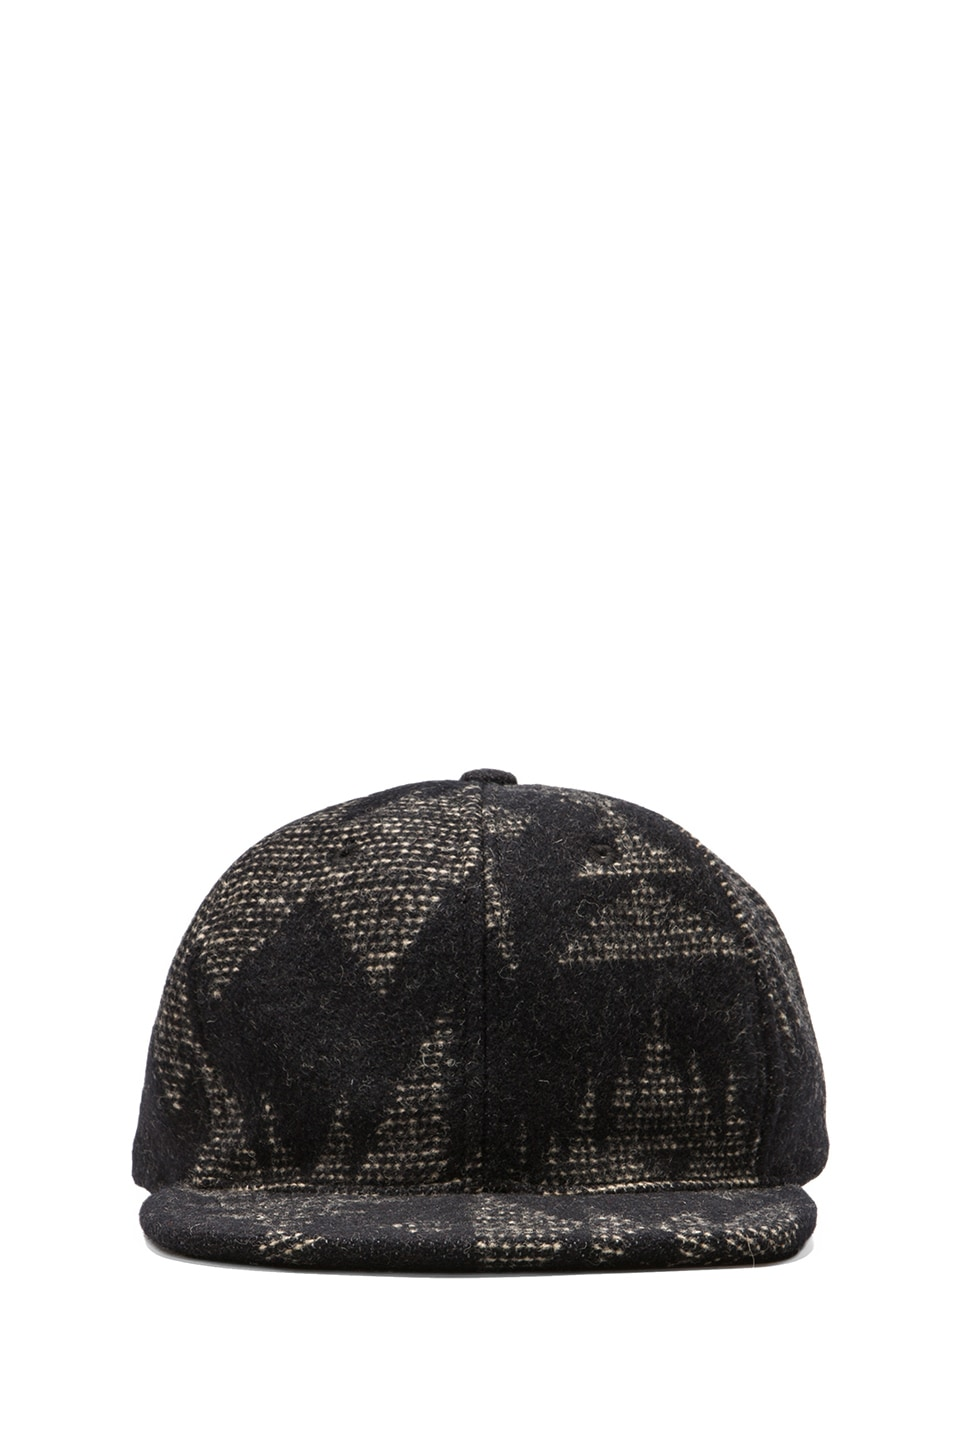 The Portland Collection by Pendleton Prineville Cap in Black Sonora